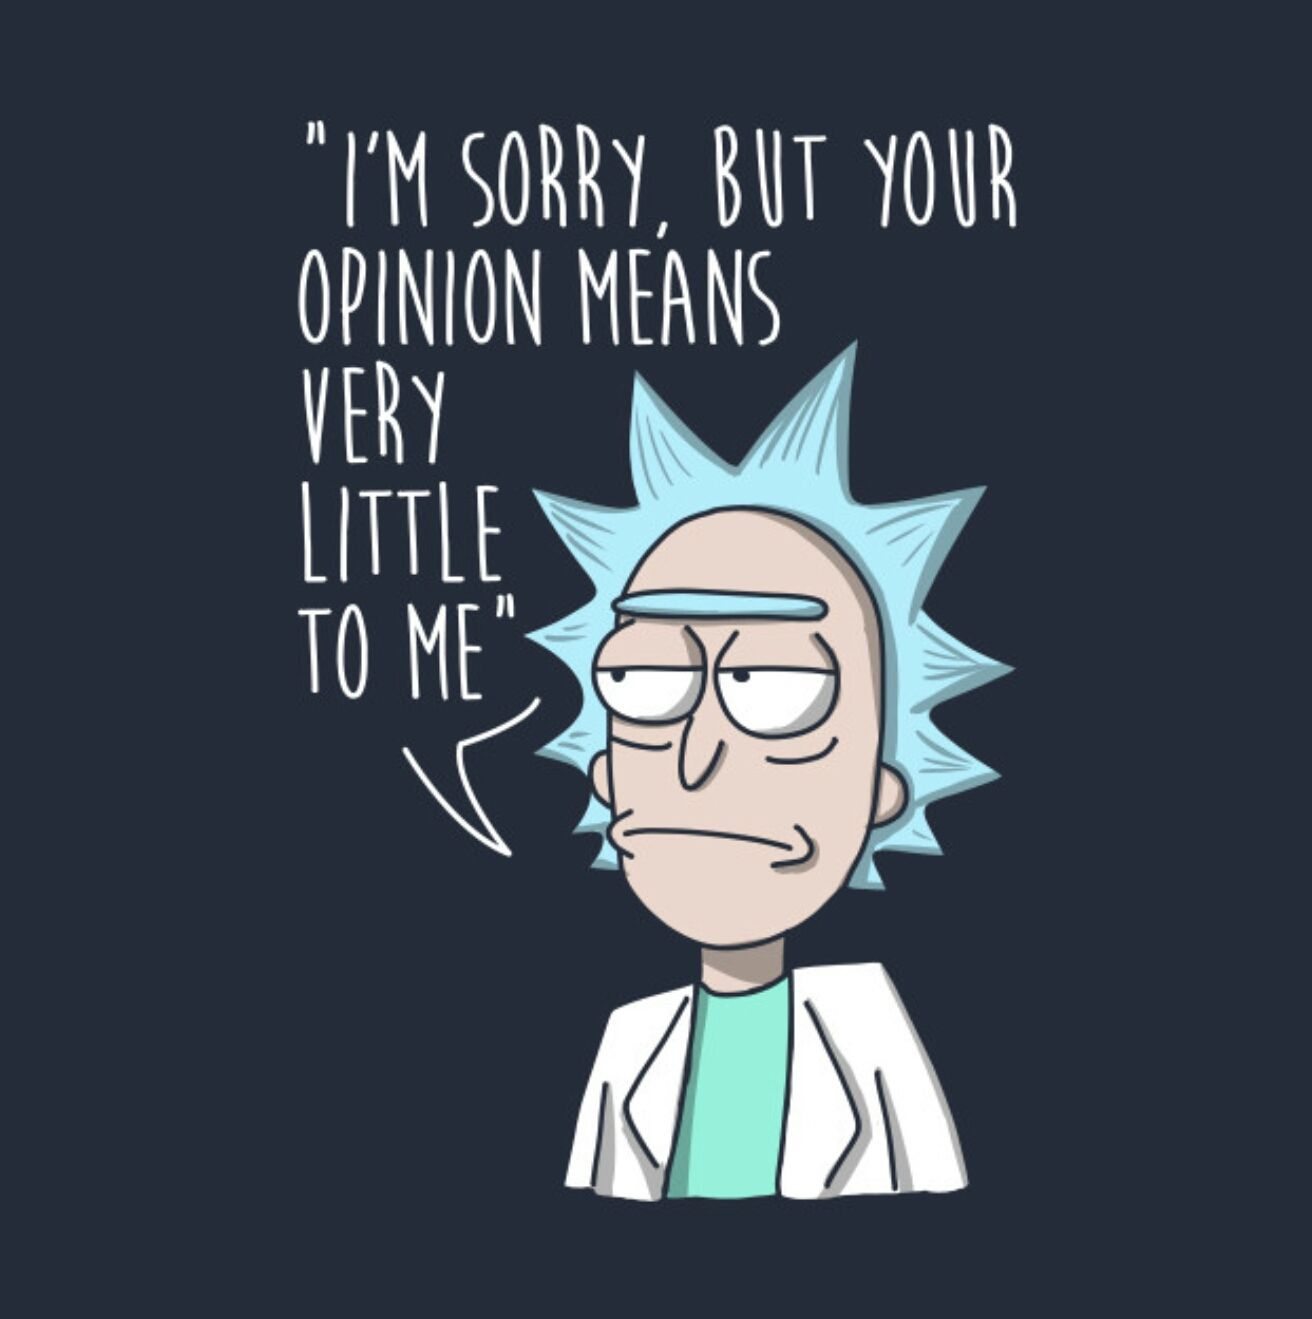 Best Rick And Morty Quotes Brilliant Warning Sad Dump  Pinterest  Cartoon Tvs And Wallpaper